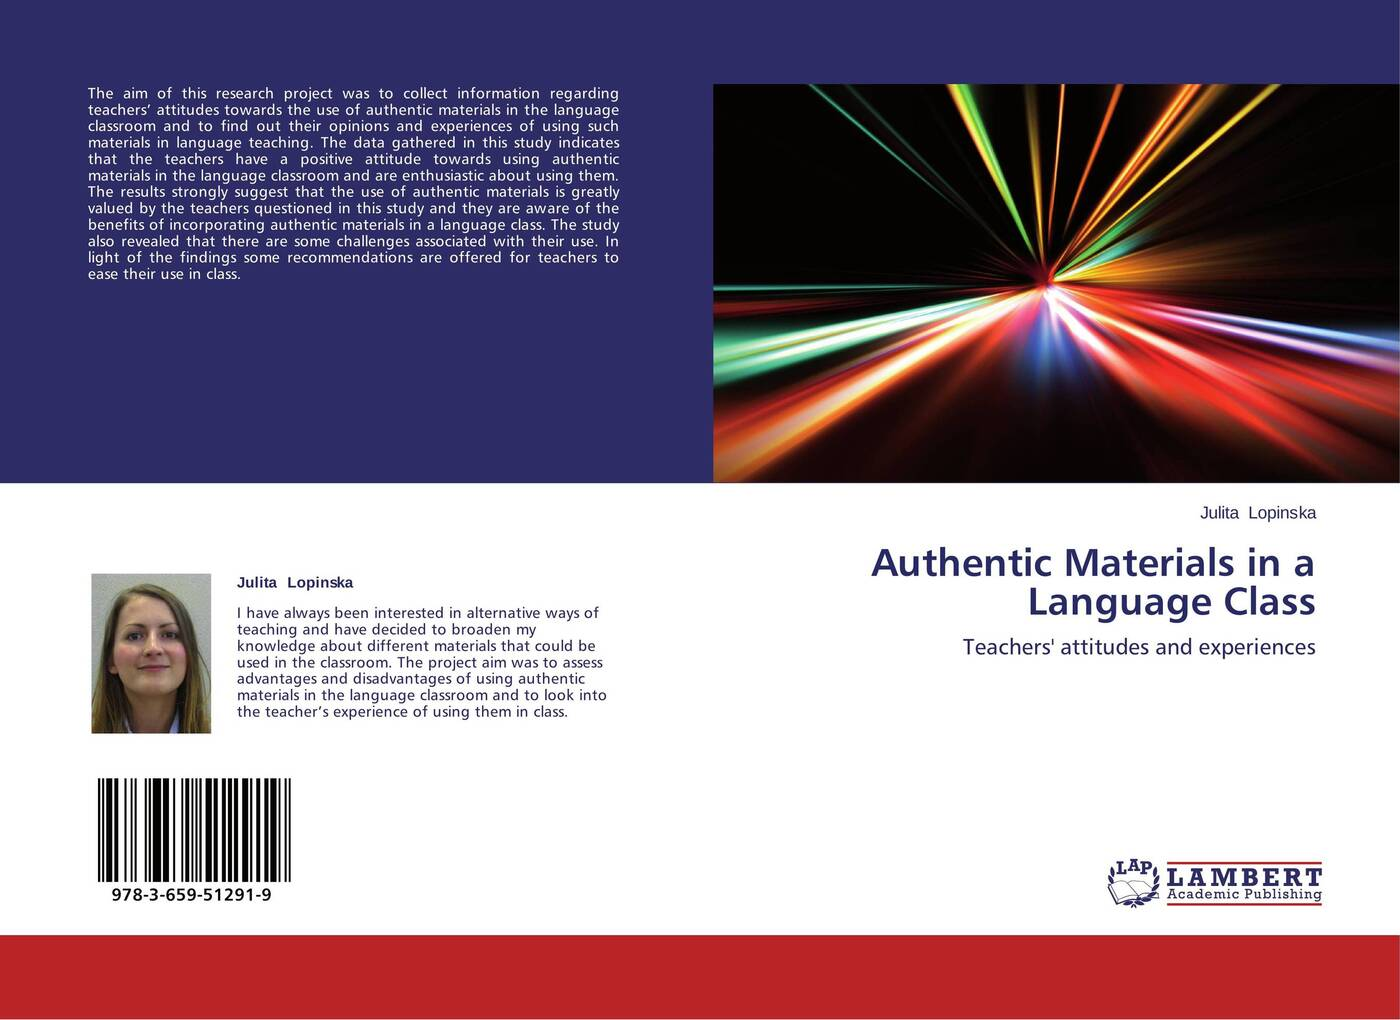 Julita Lopinska Authentic Materials in a Language Class ambiguity in language use